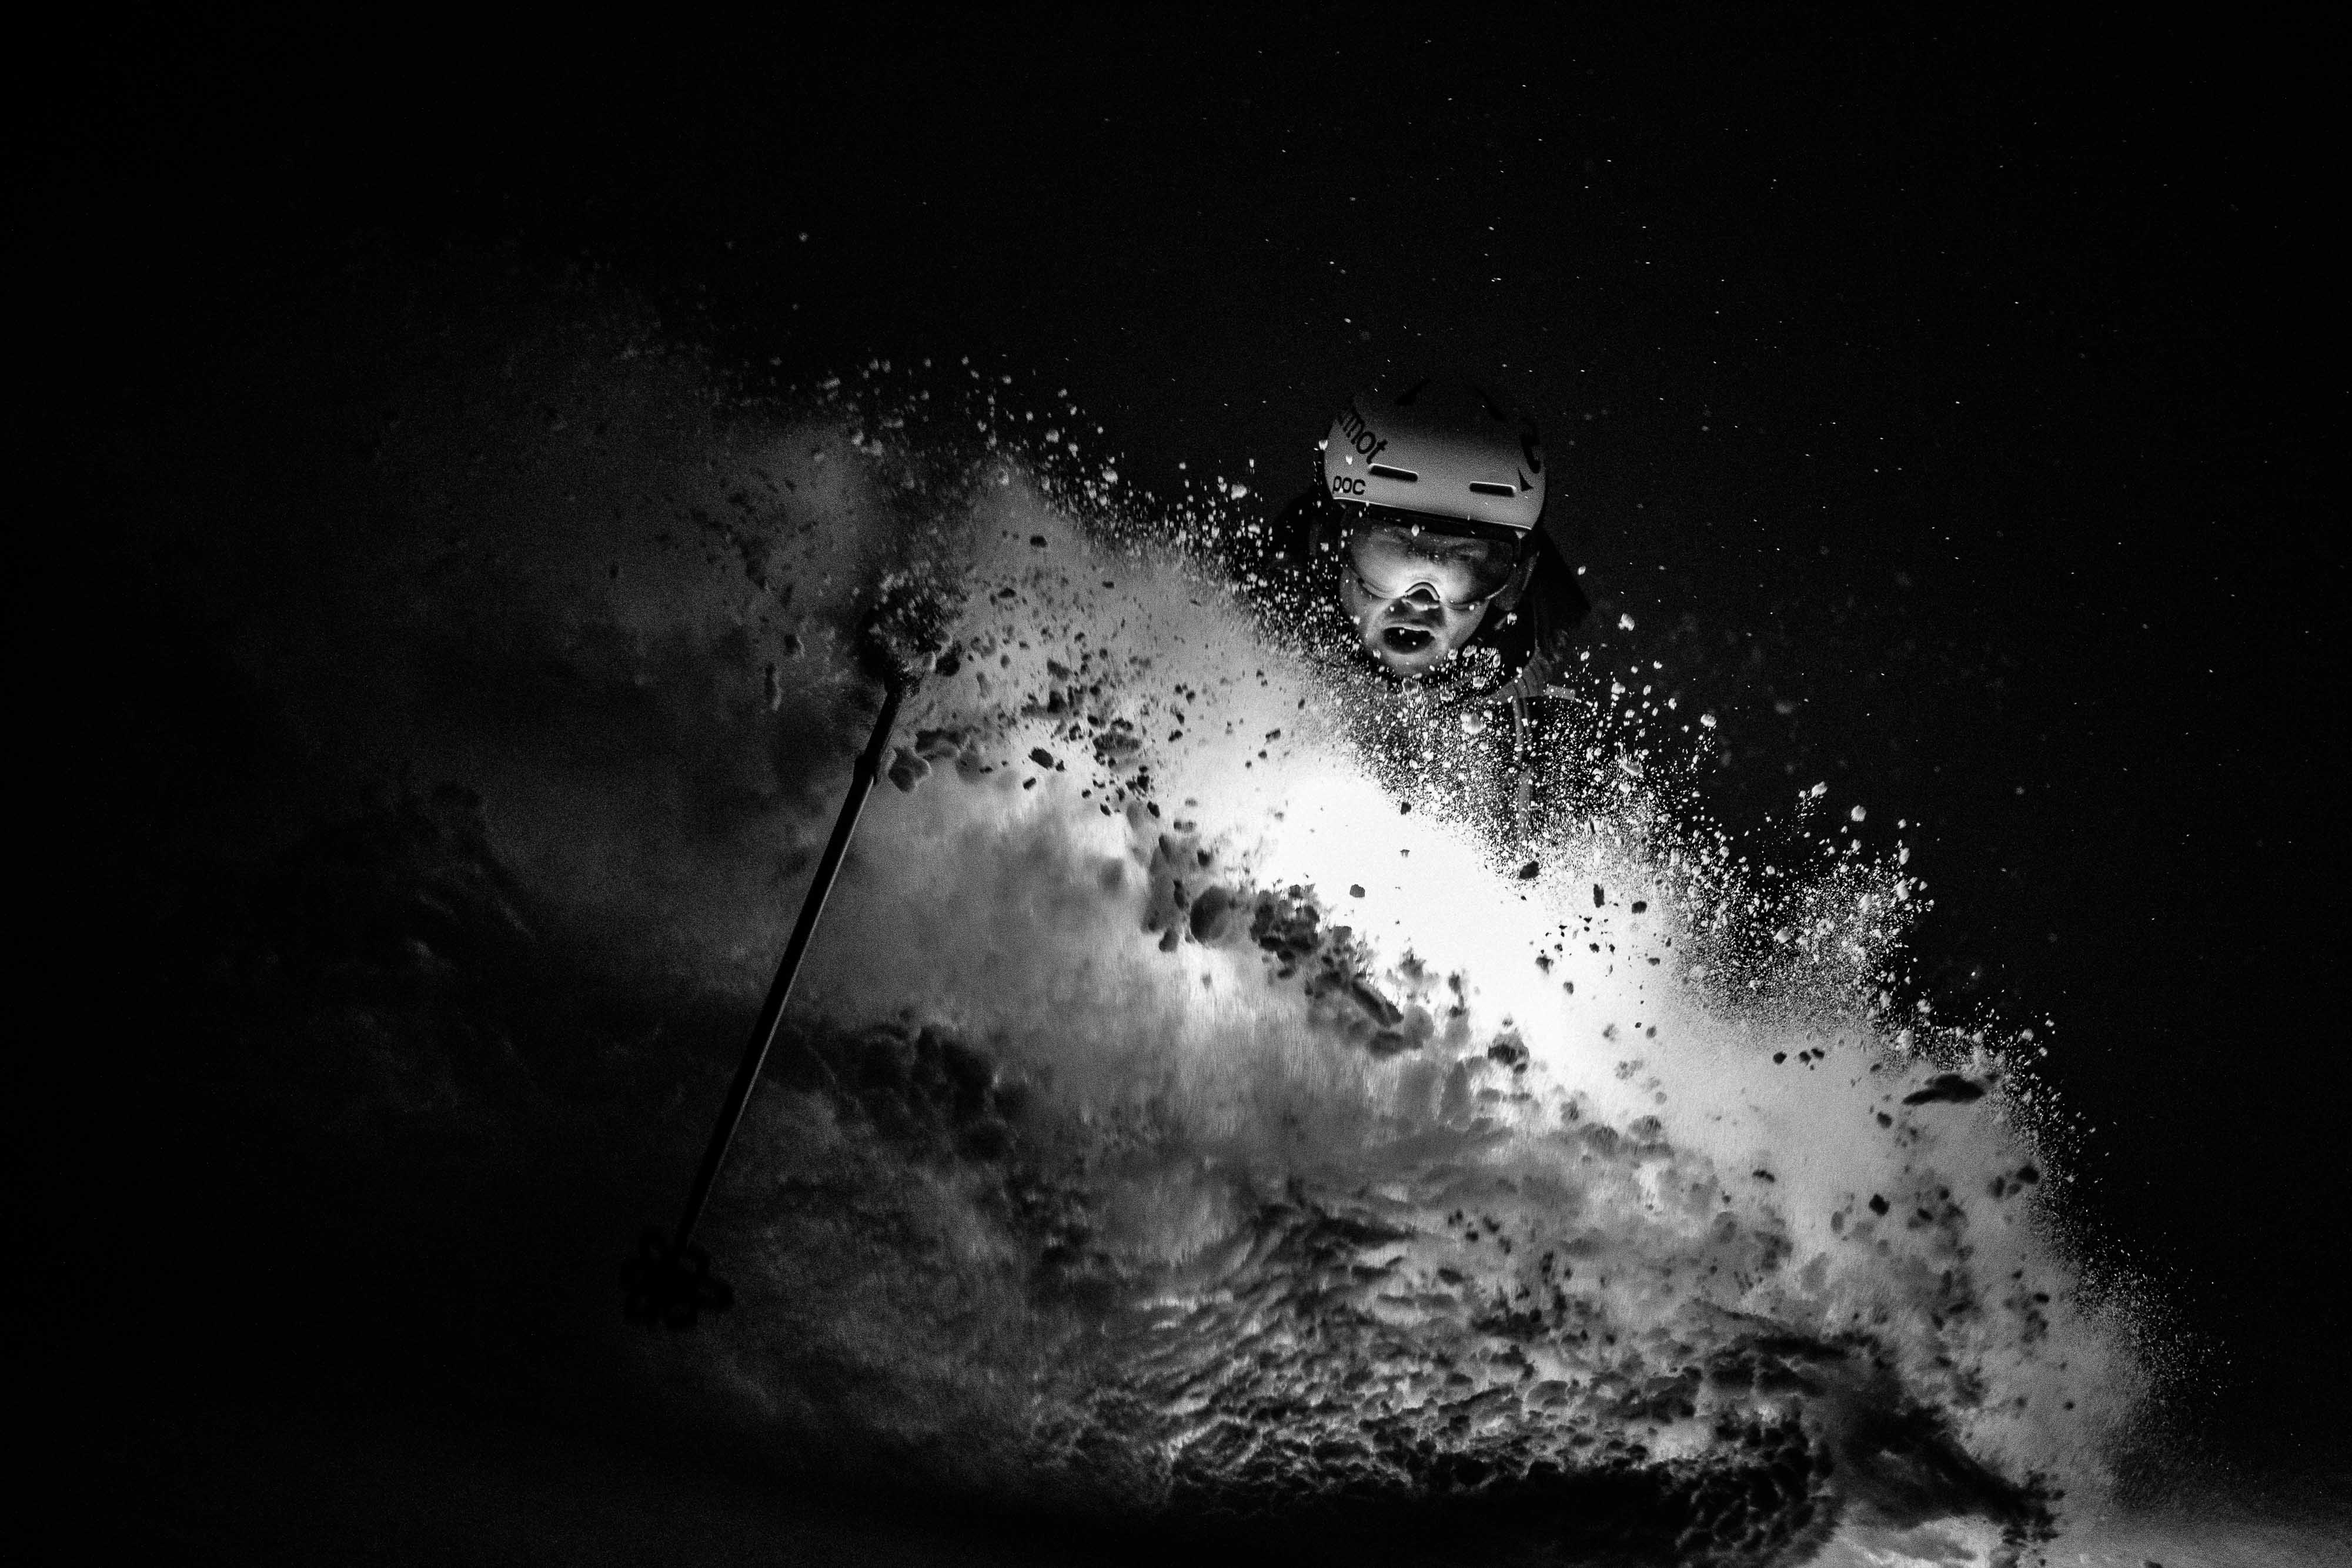 Night Skiing with Tanner Flanagan Large © Jay Goodrich